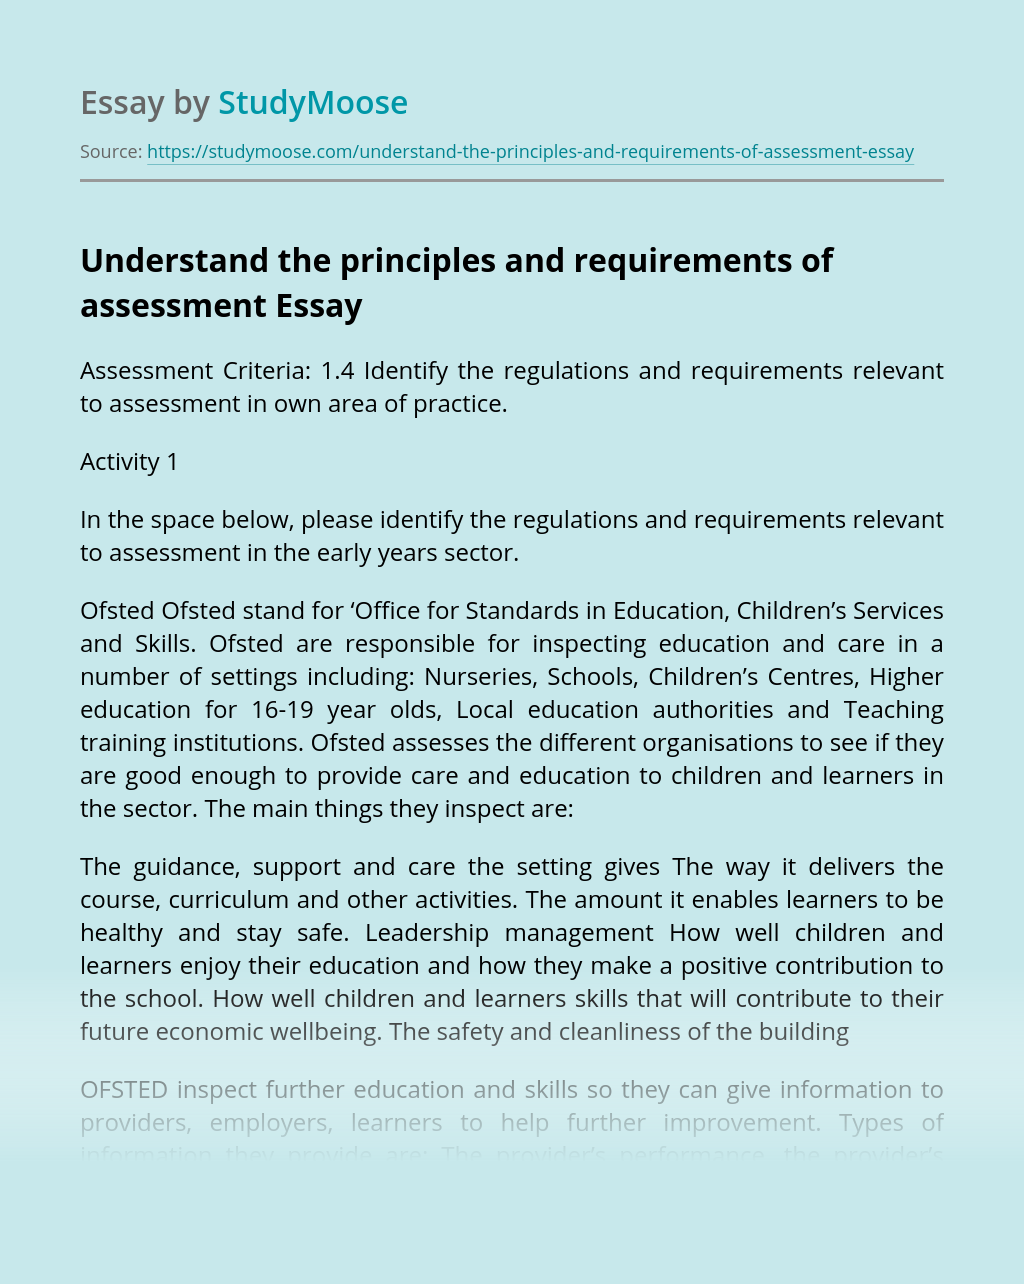 Understand the principles and requirements of assessment